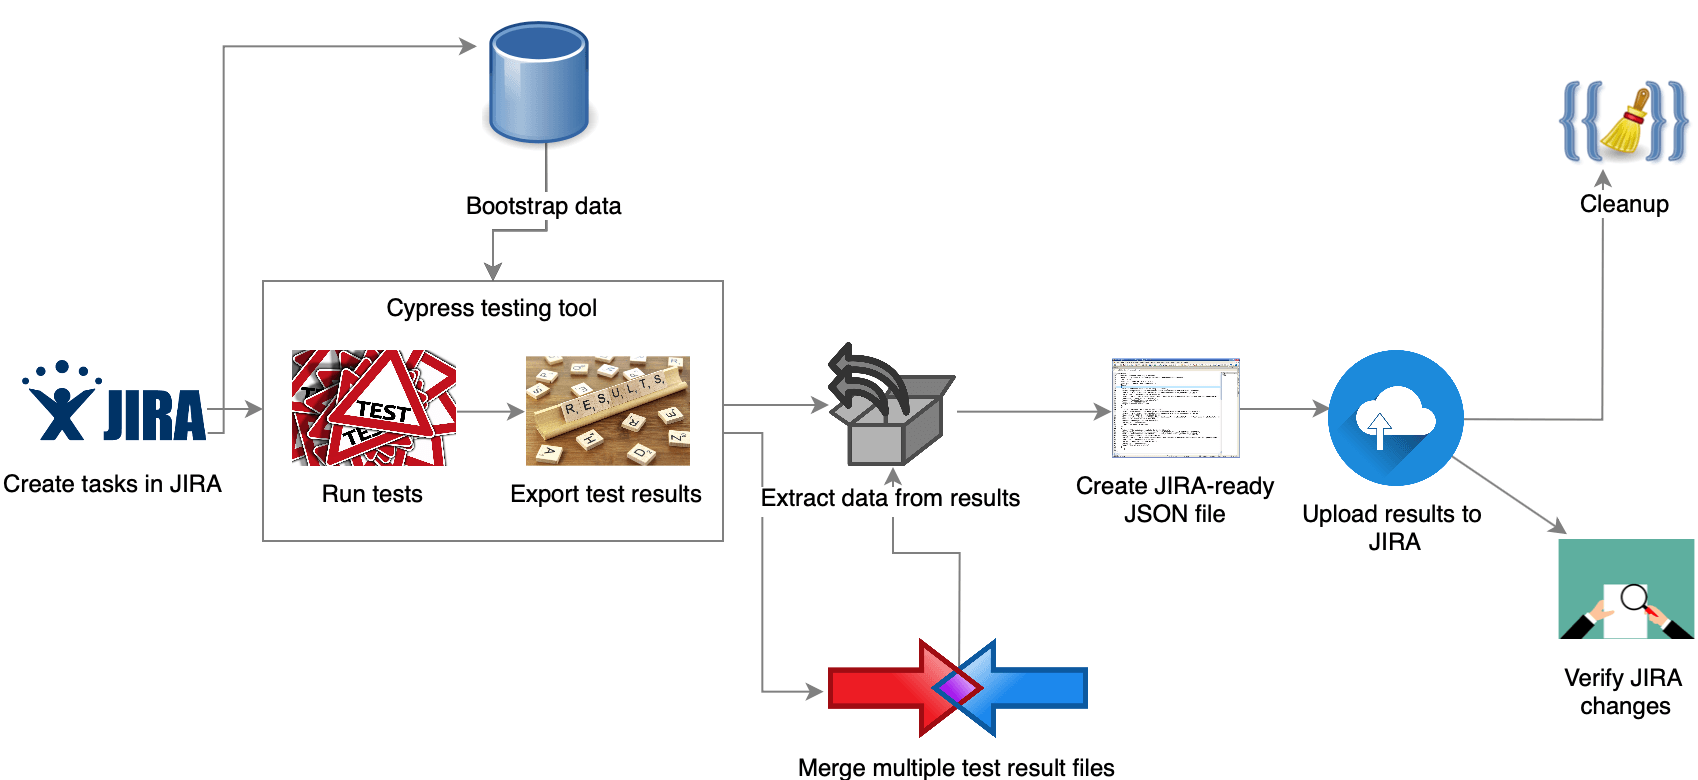 jira-automation-workflow.png